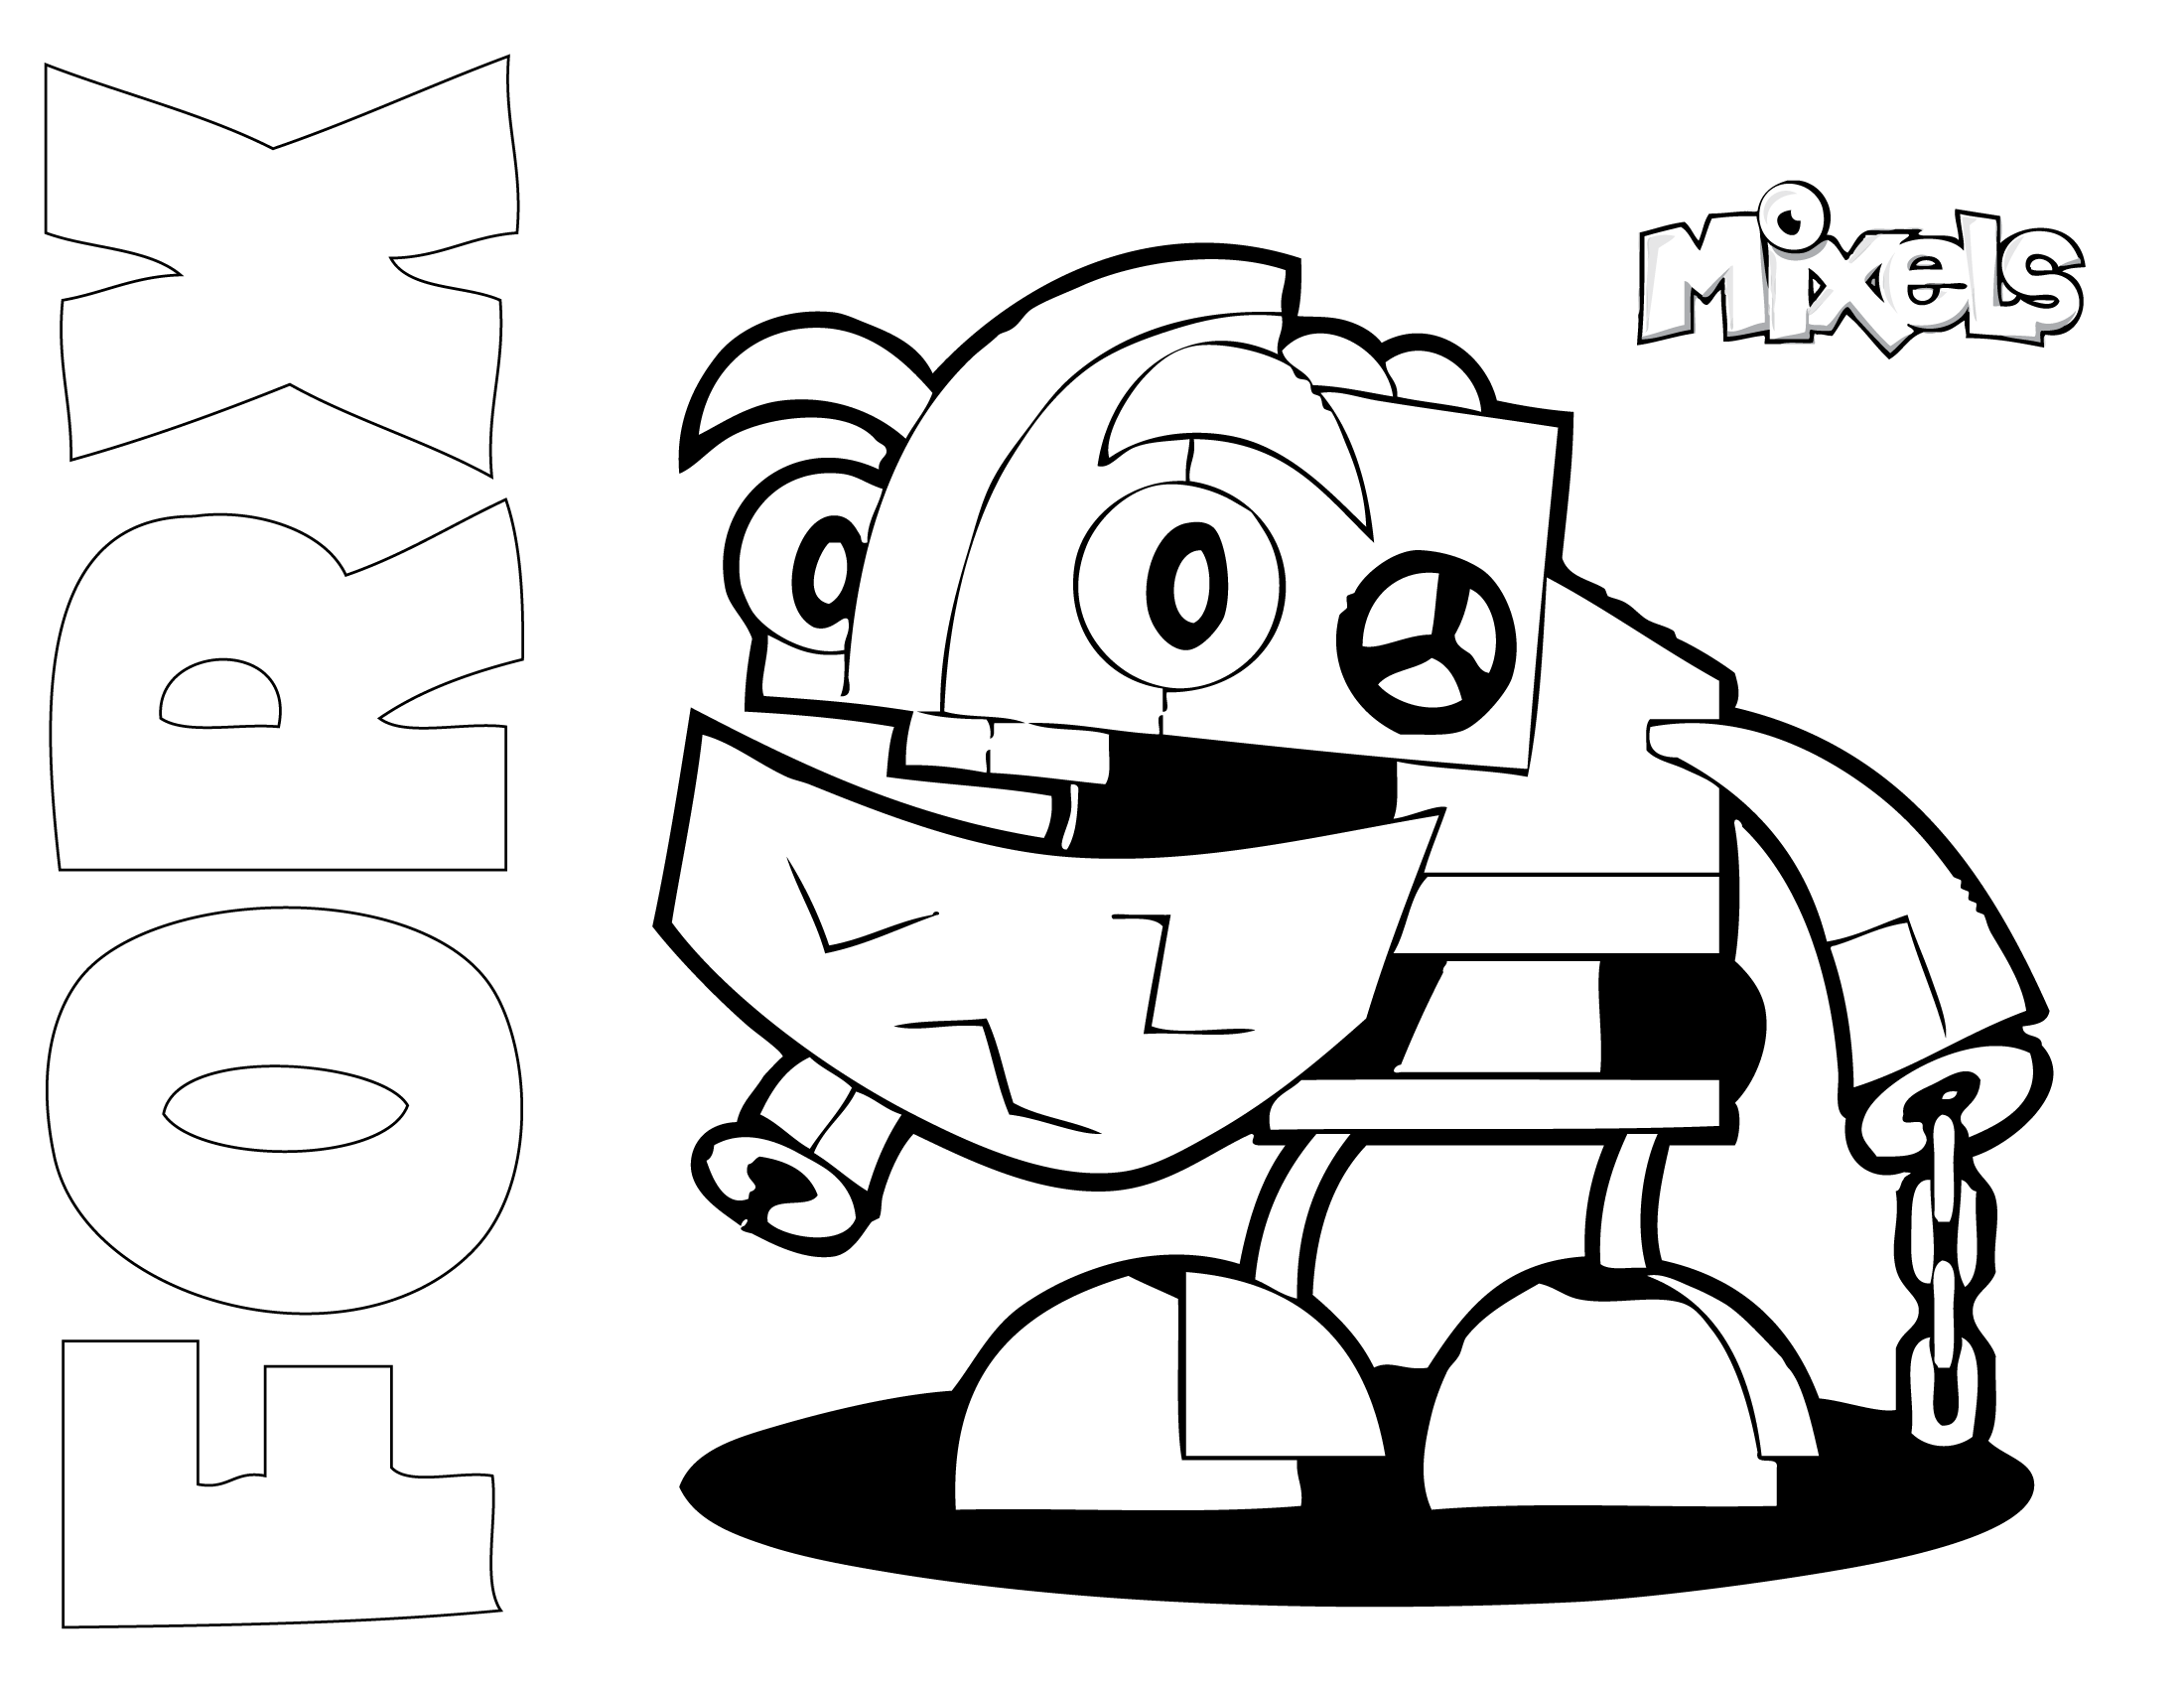 mixel coloring pages fla in - photo#10